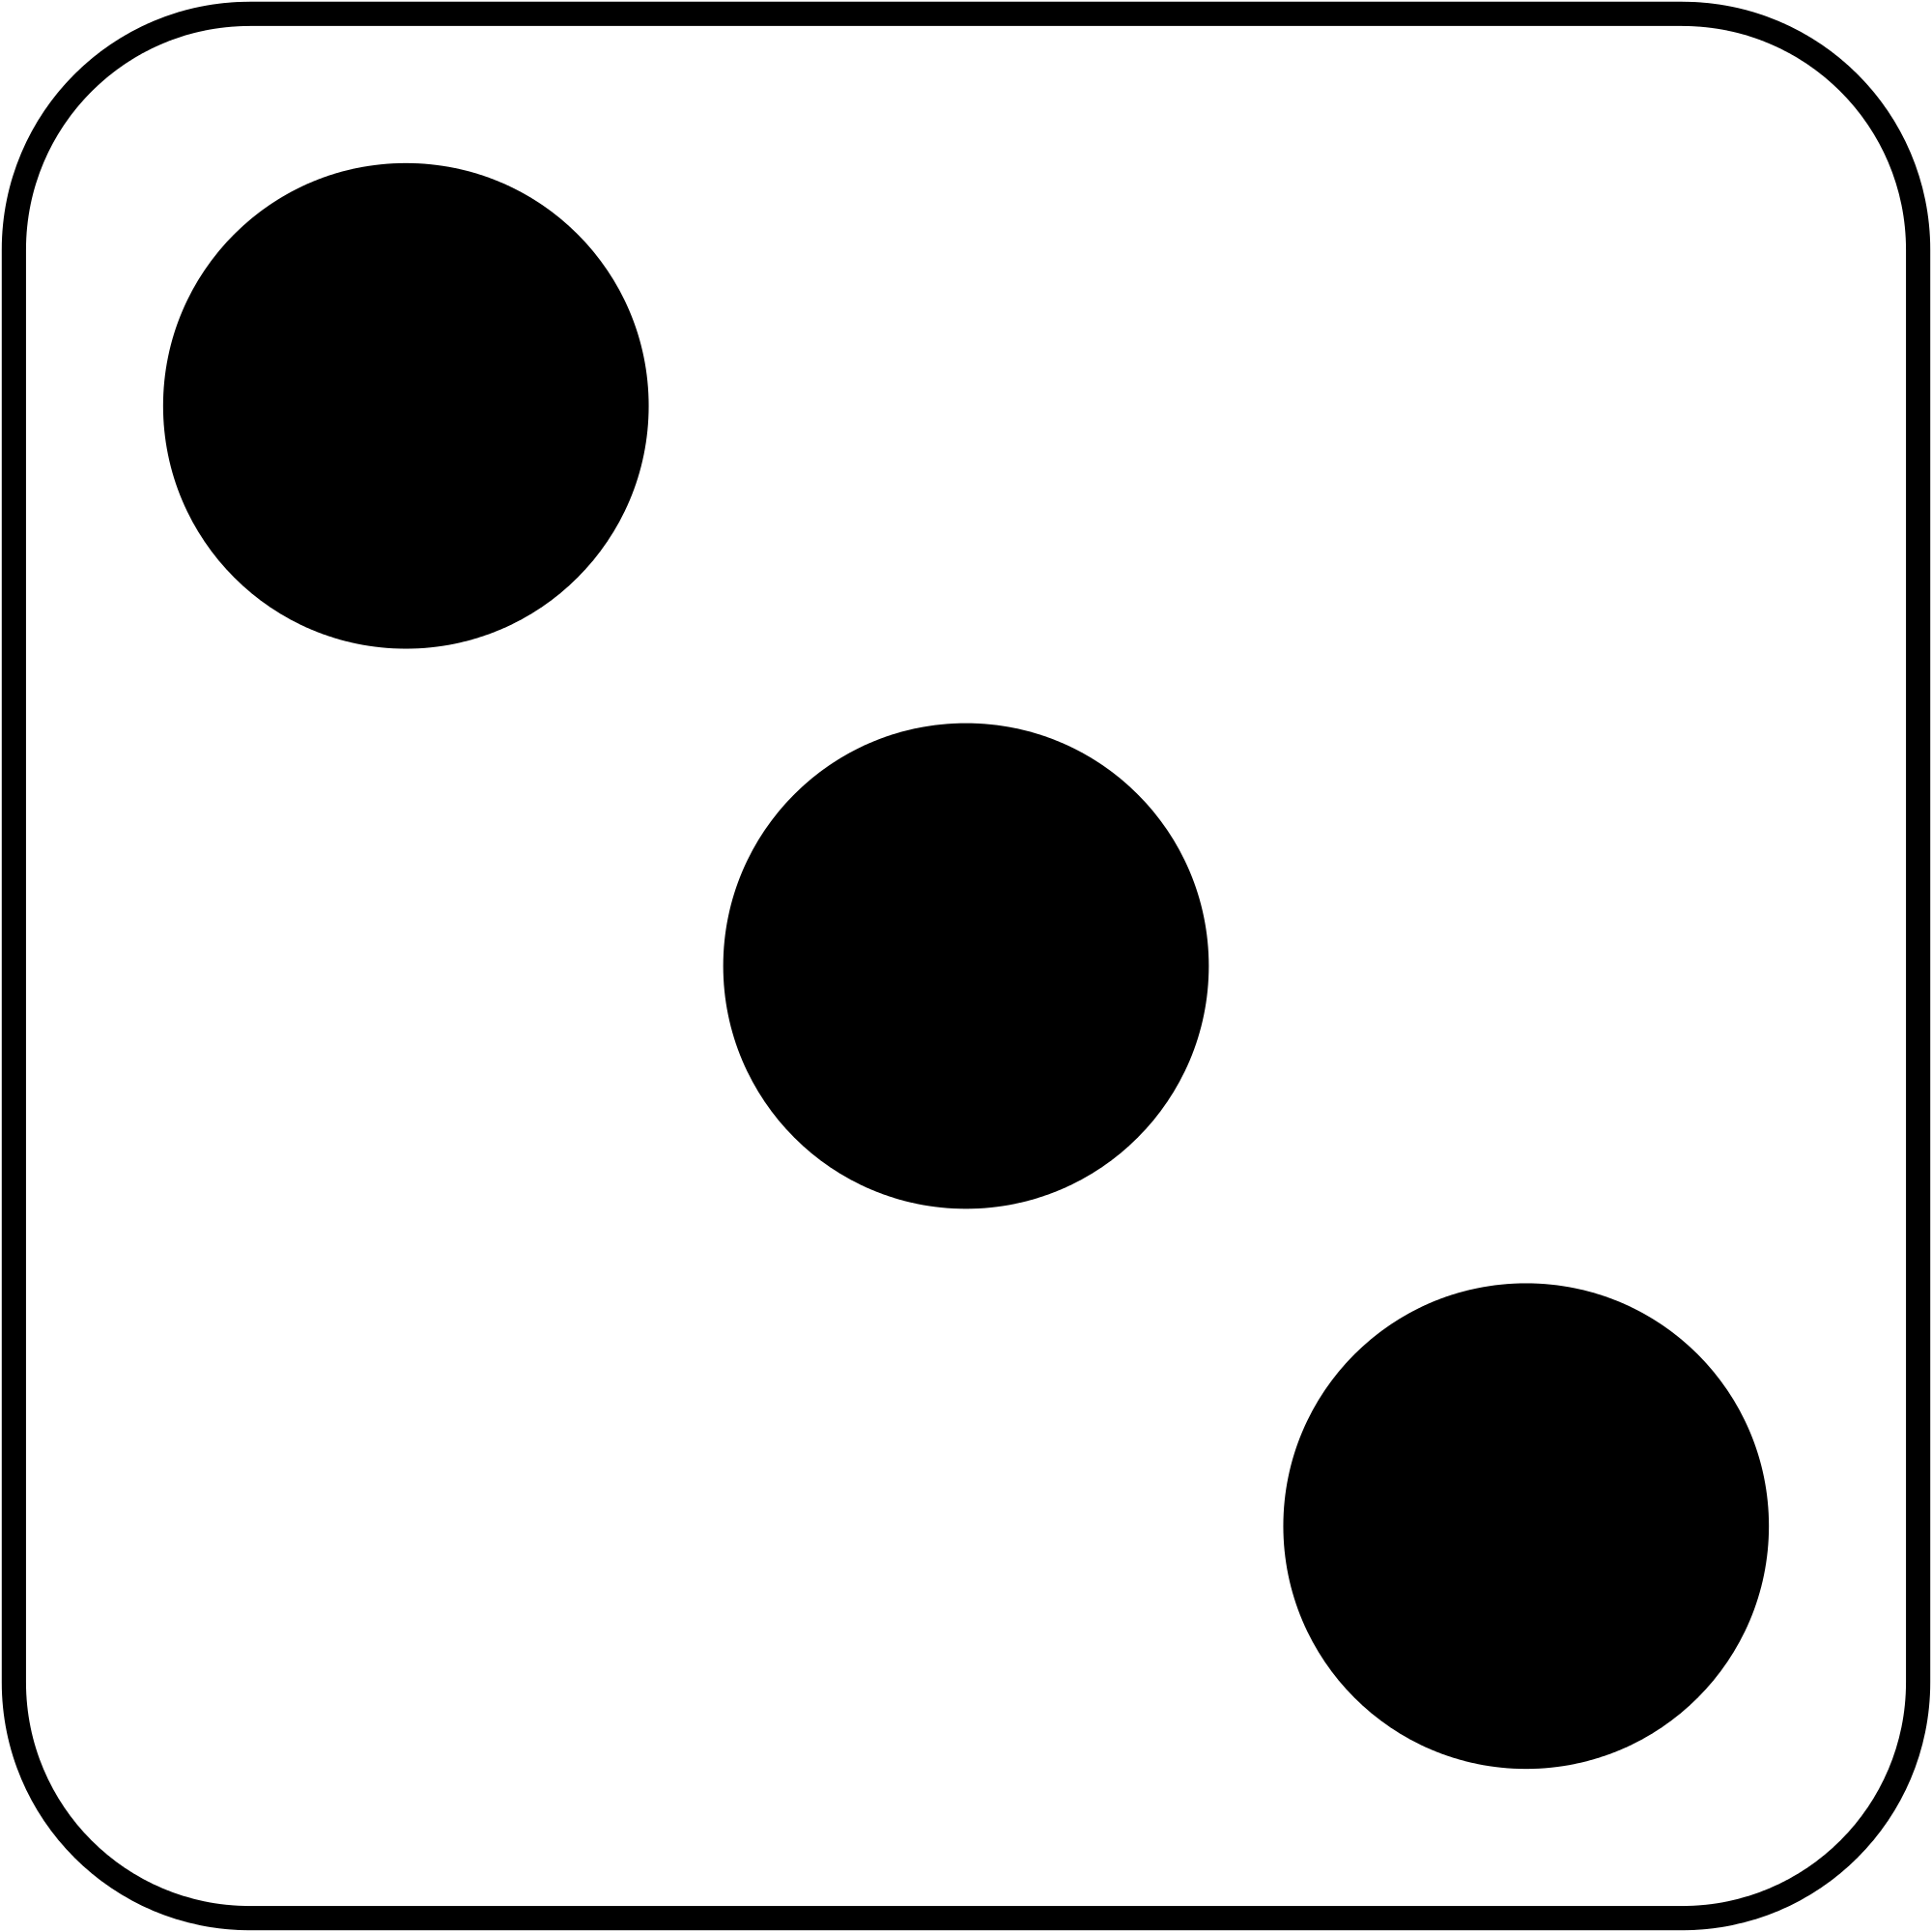 hight resolution of number 3 dice clipart black and white